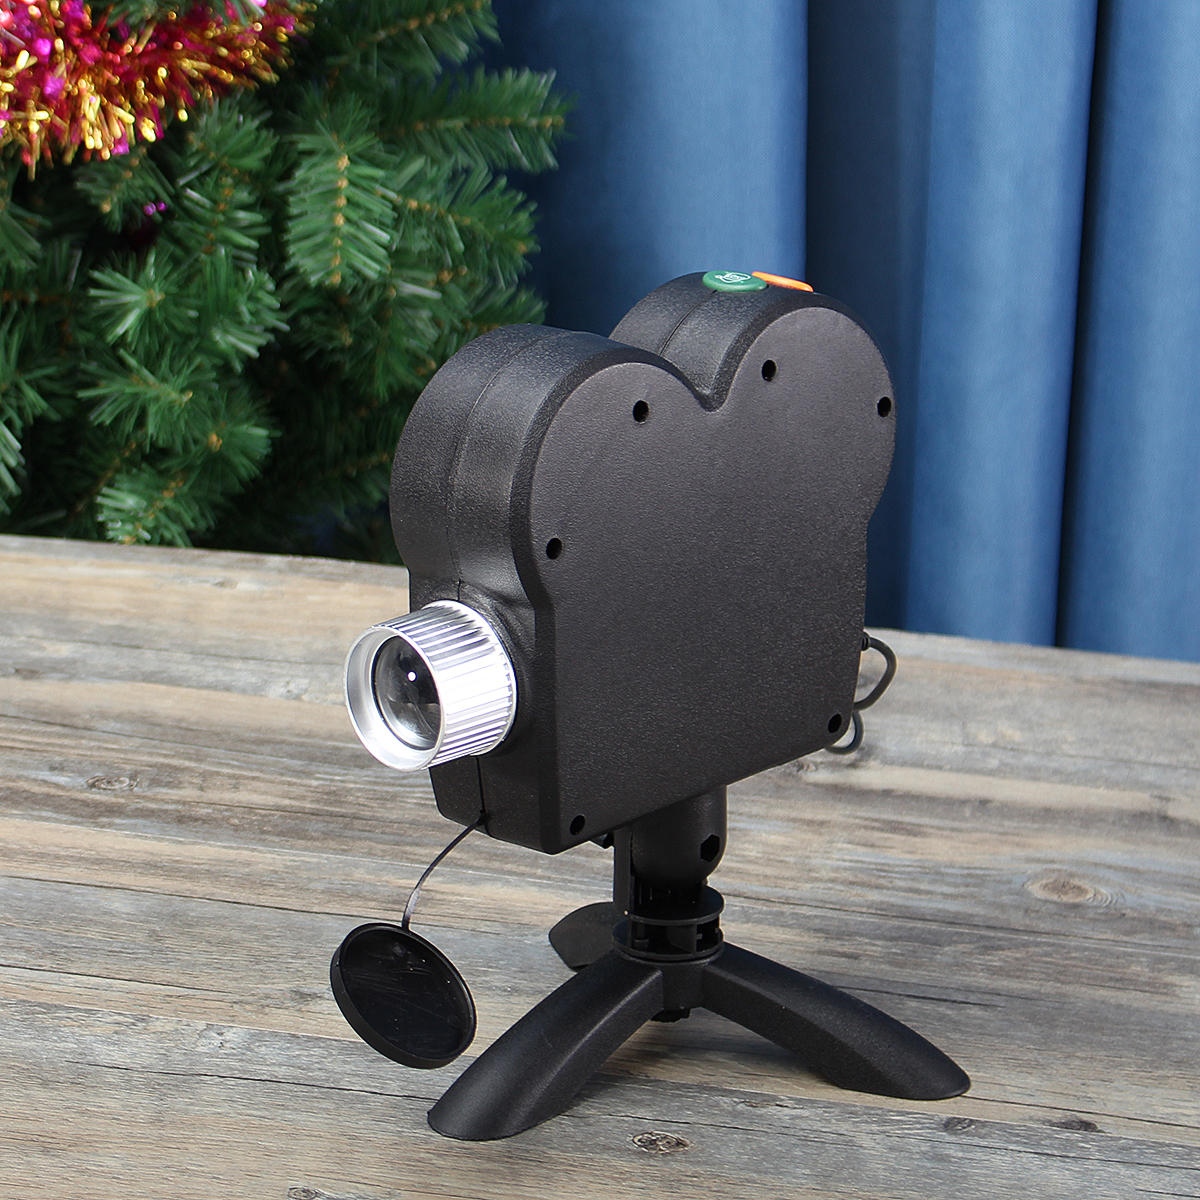 mini holiday video window projector lamp halloween christmas light